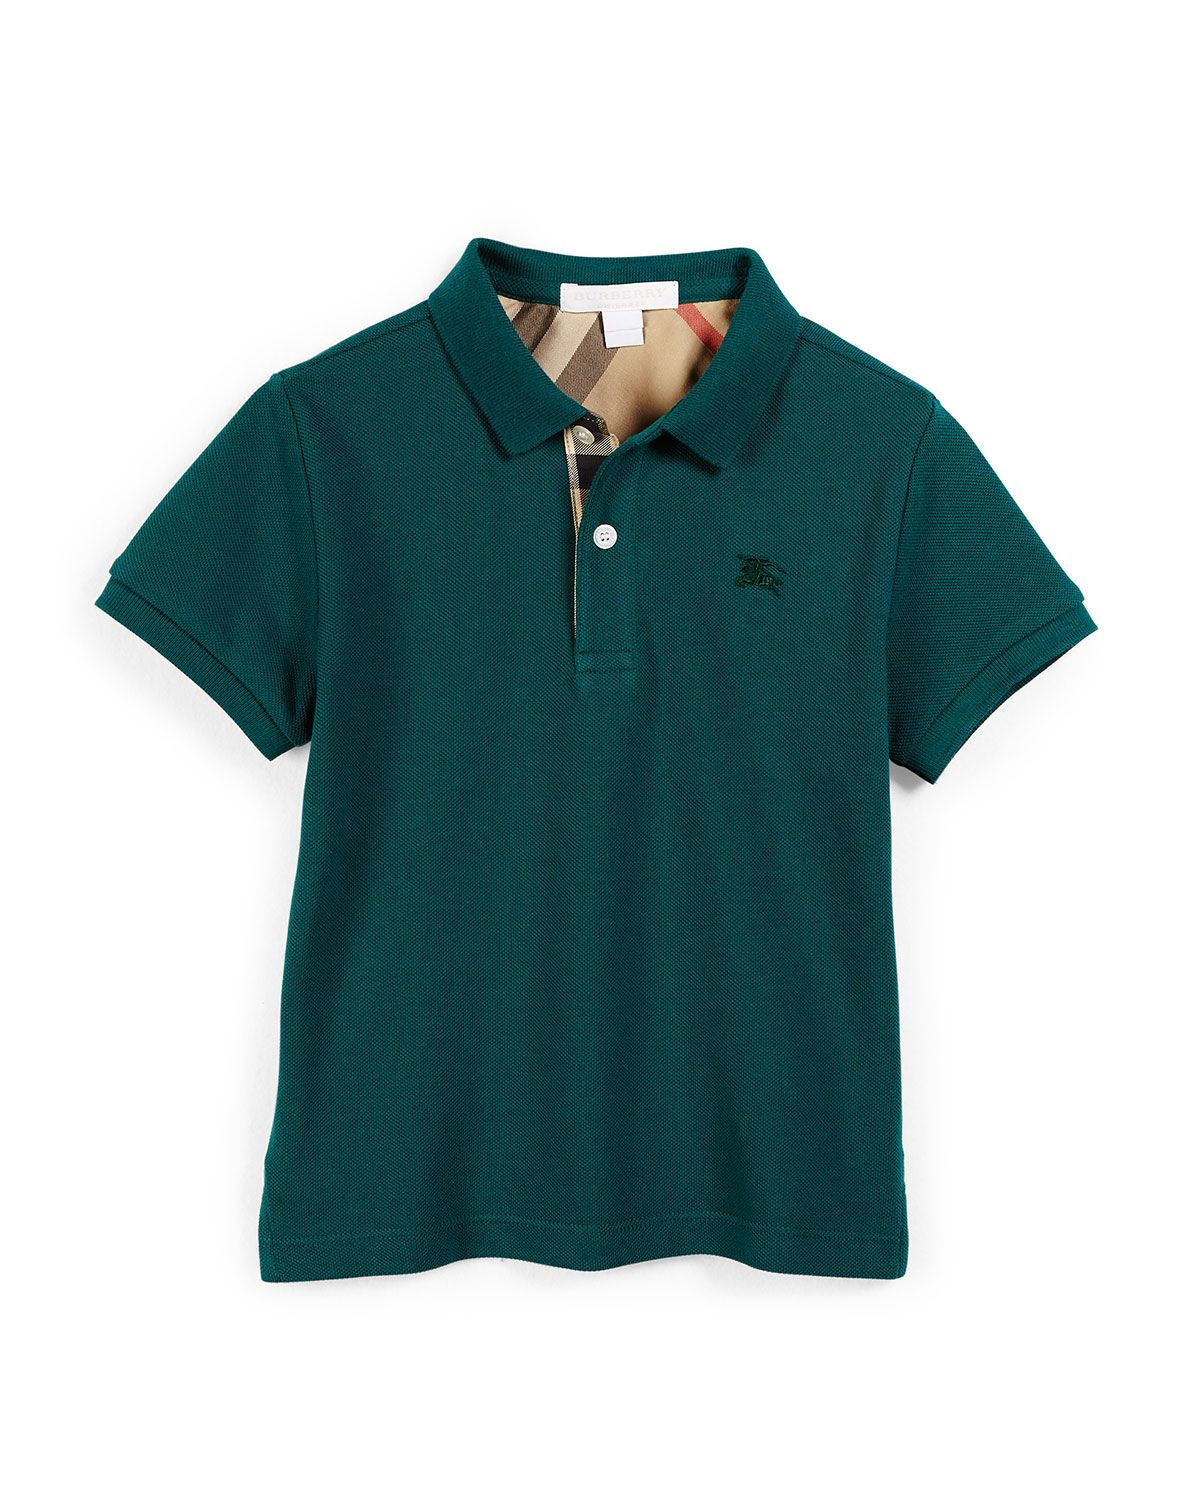 Short-Sleeve Cotton Polo Shirt, Mineral Green, Size 4-14, Size: 8 - Burberry